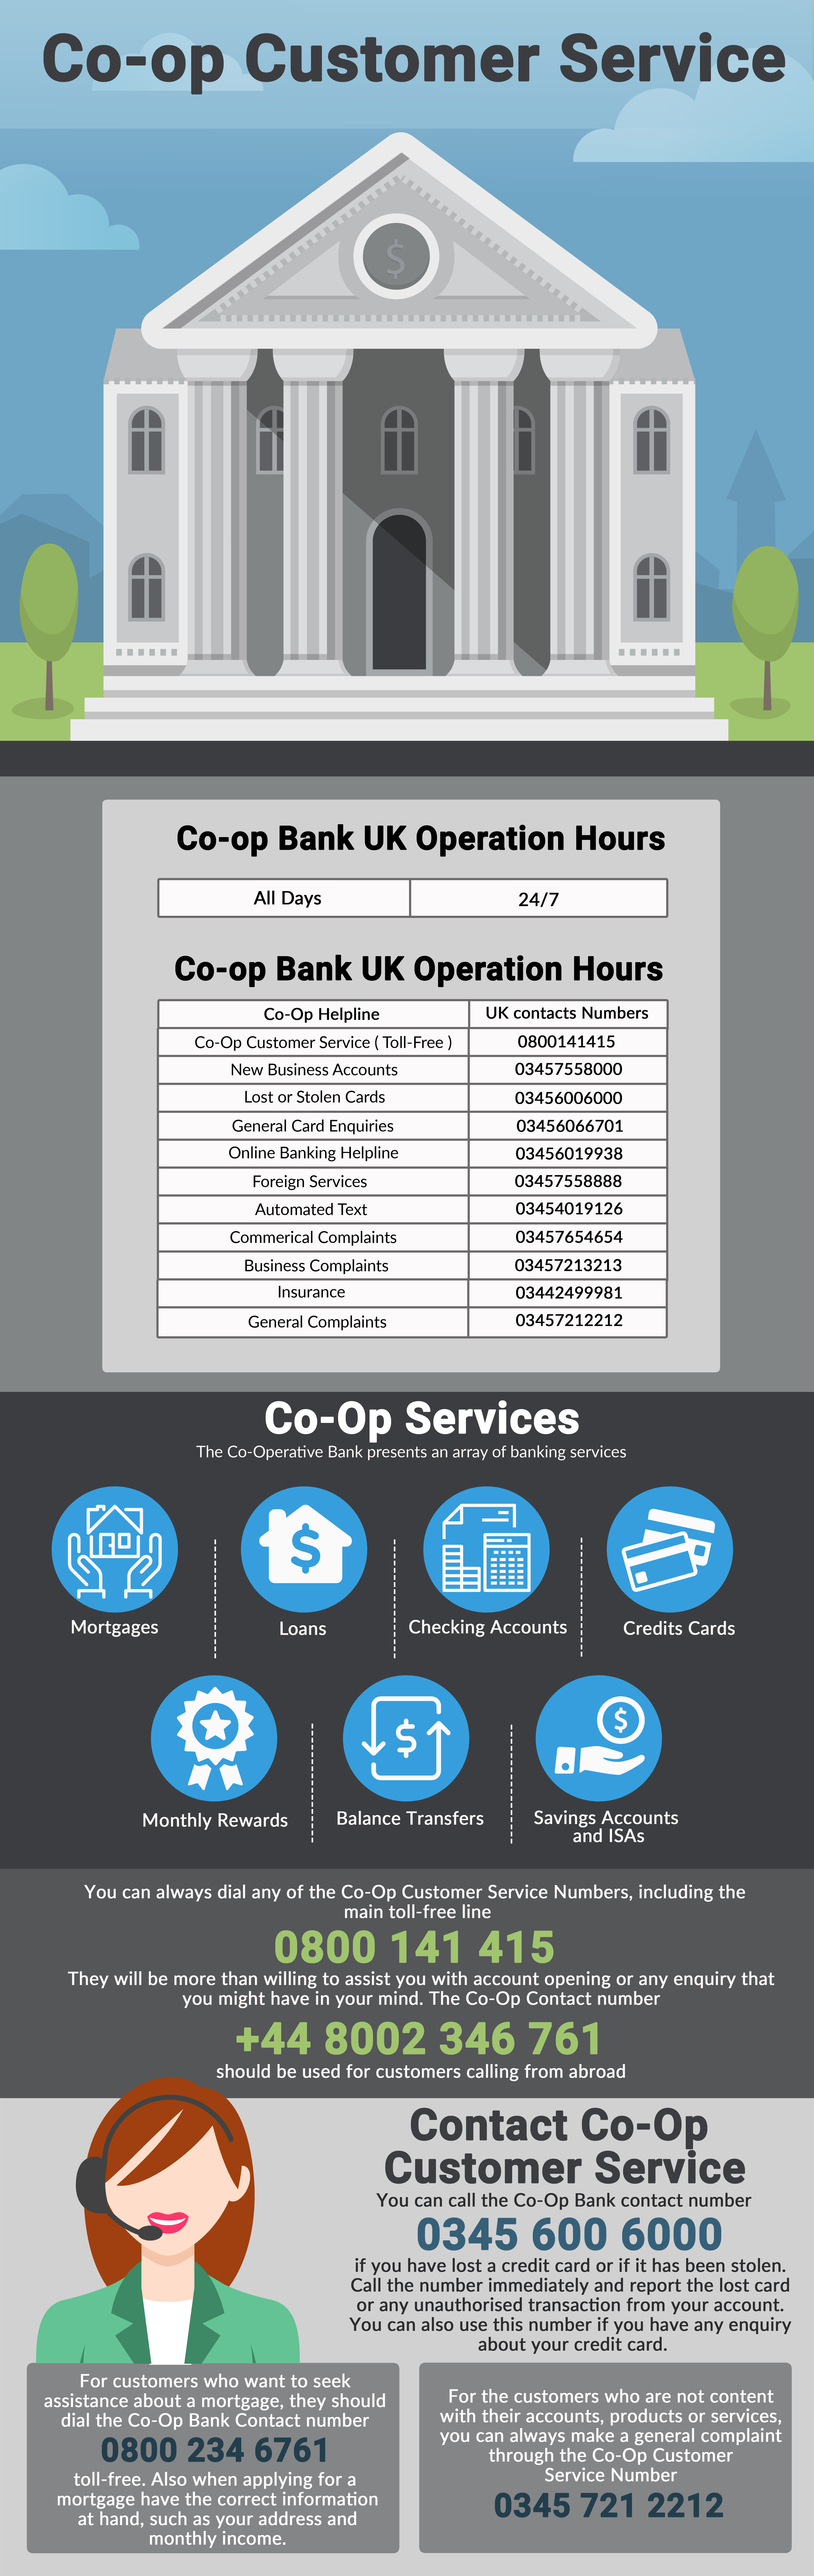 CO-OP Customer Service Contact Number